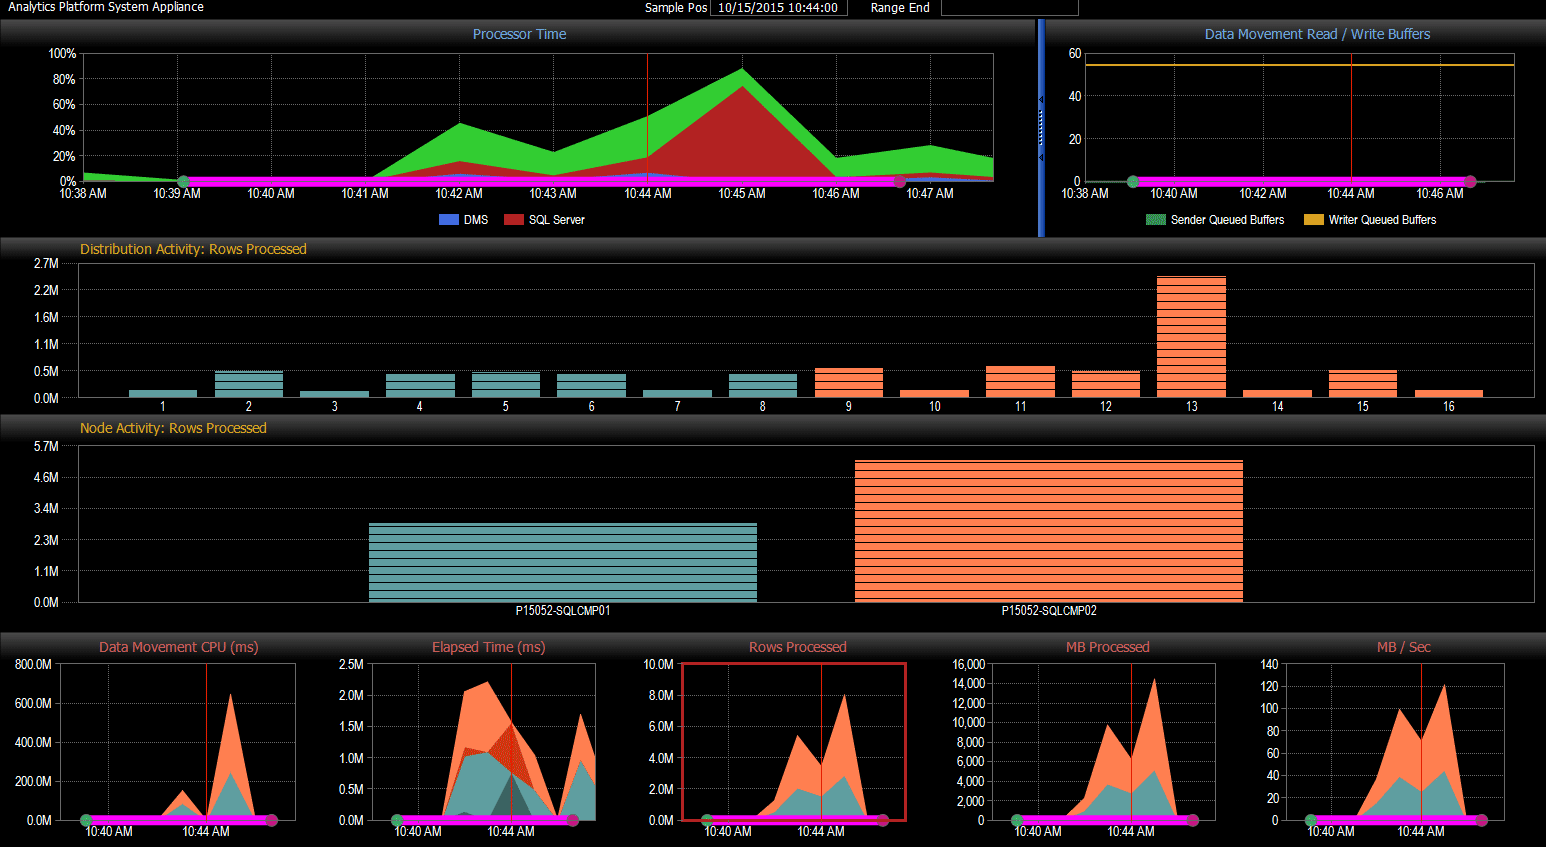 Data Movement Dashboard